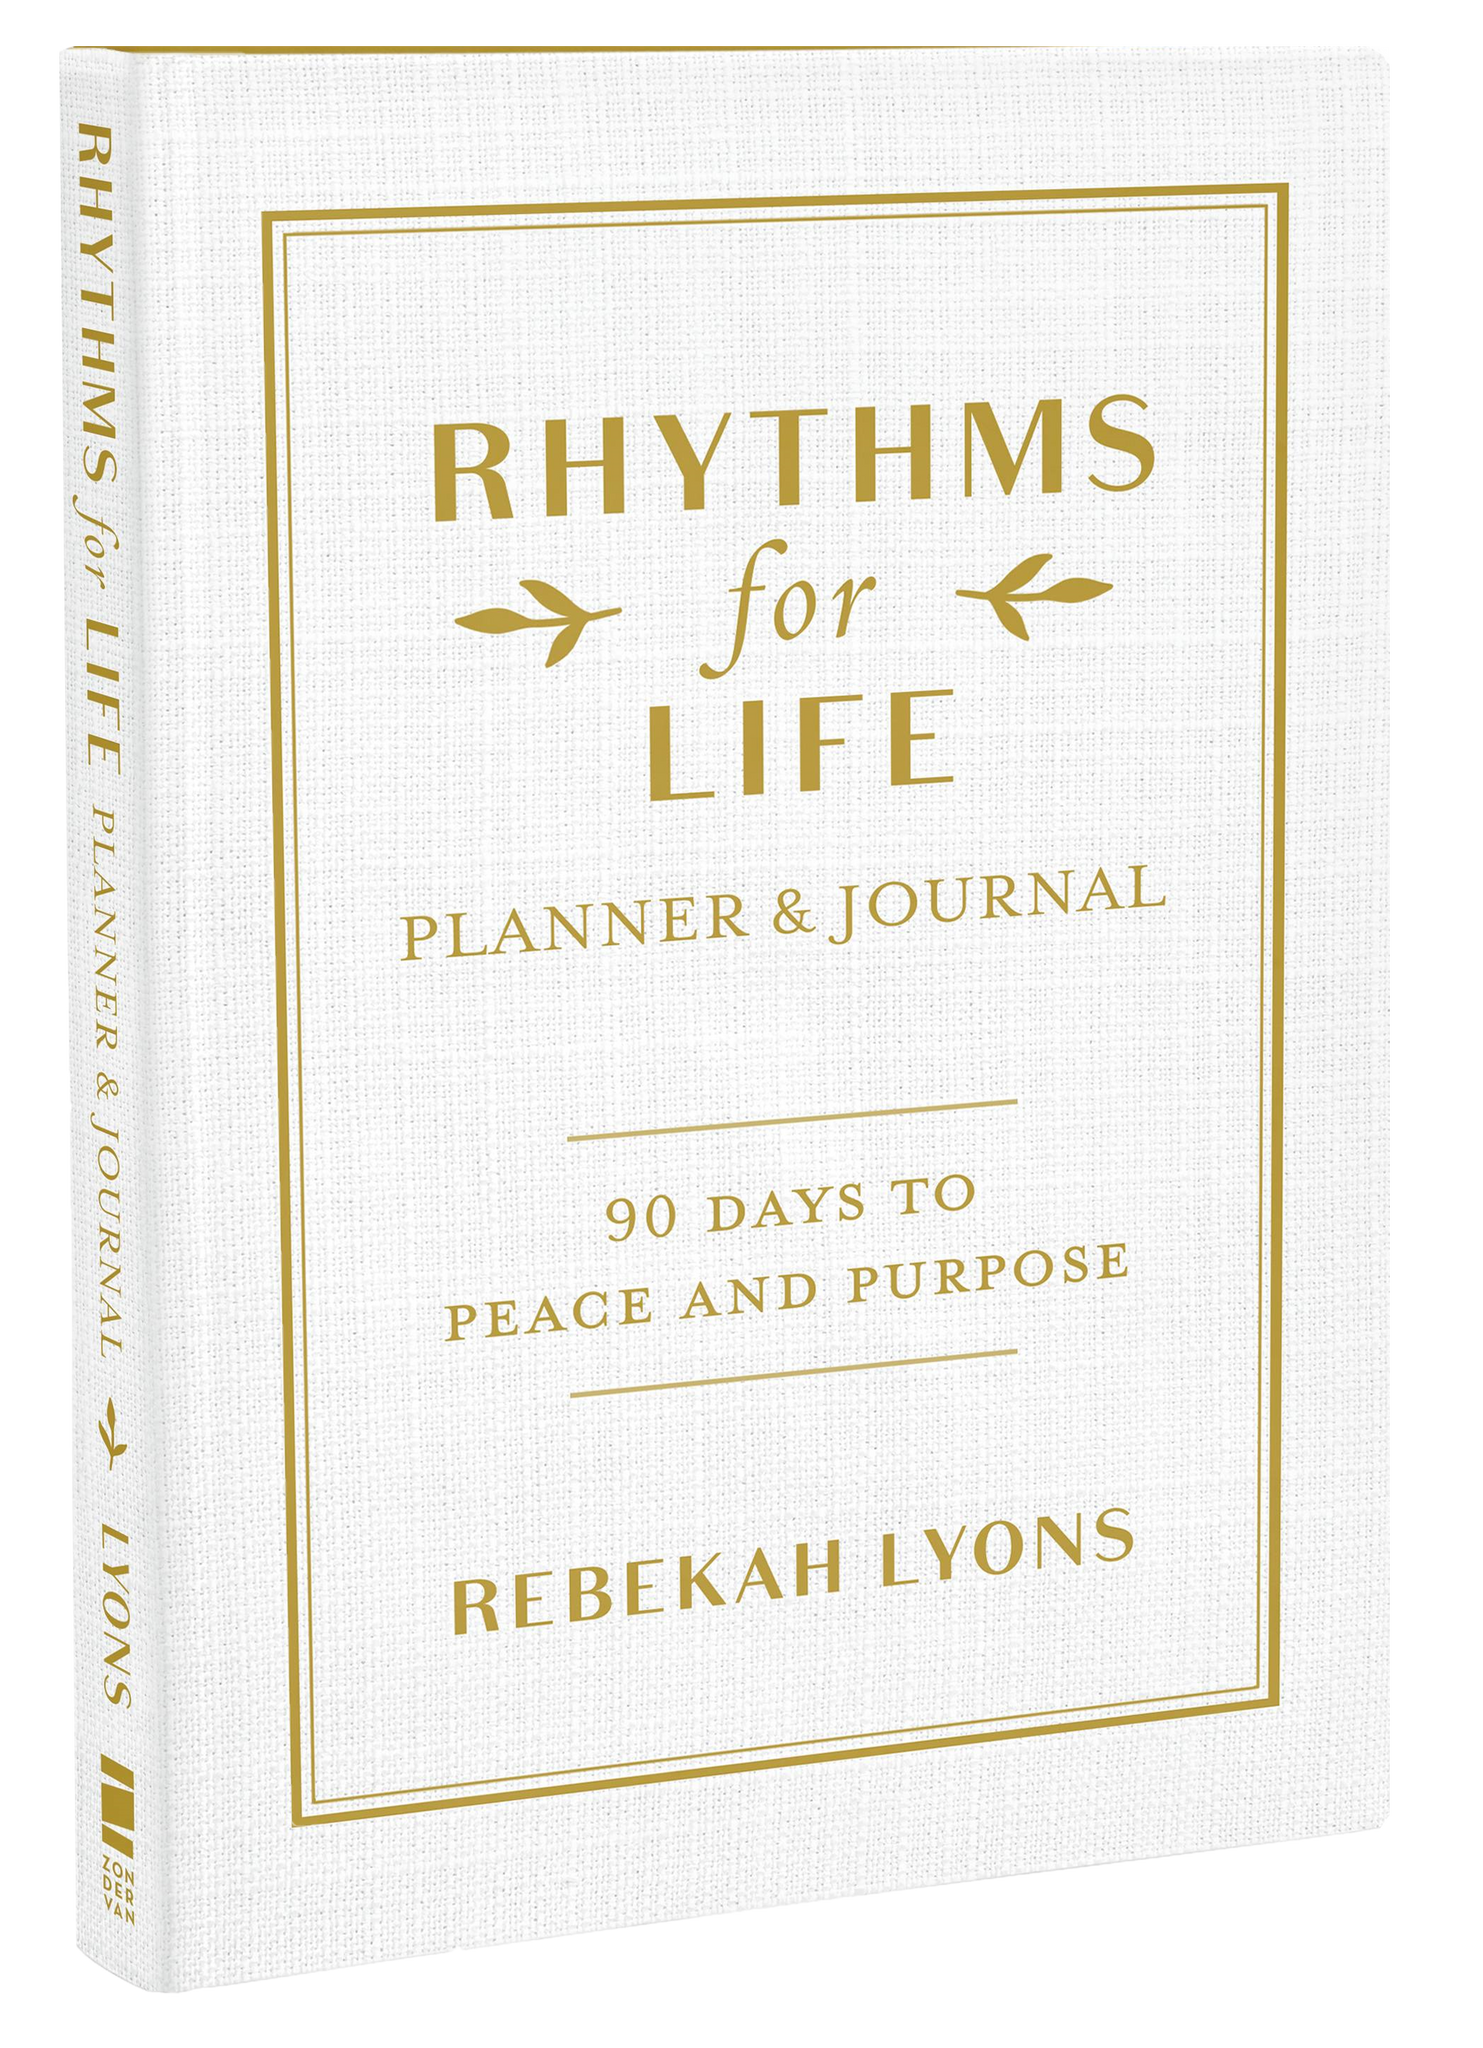 Autographed Copy of Rhythms for Life Planner & Journal